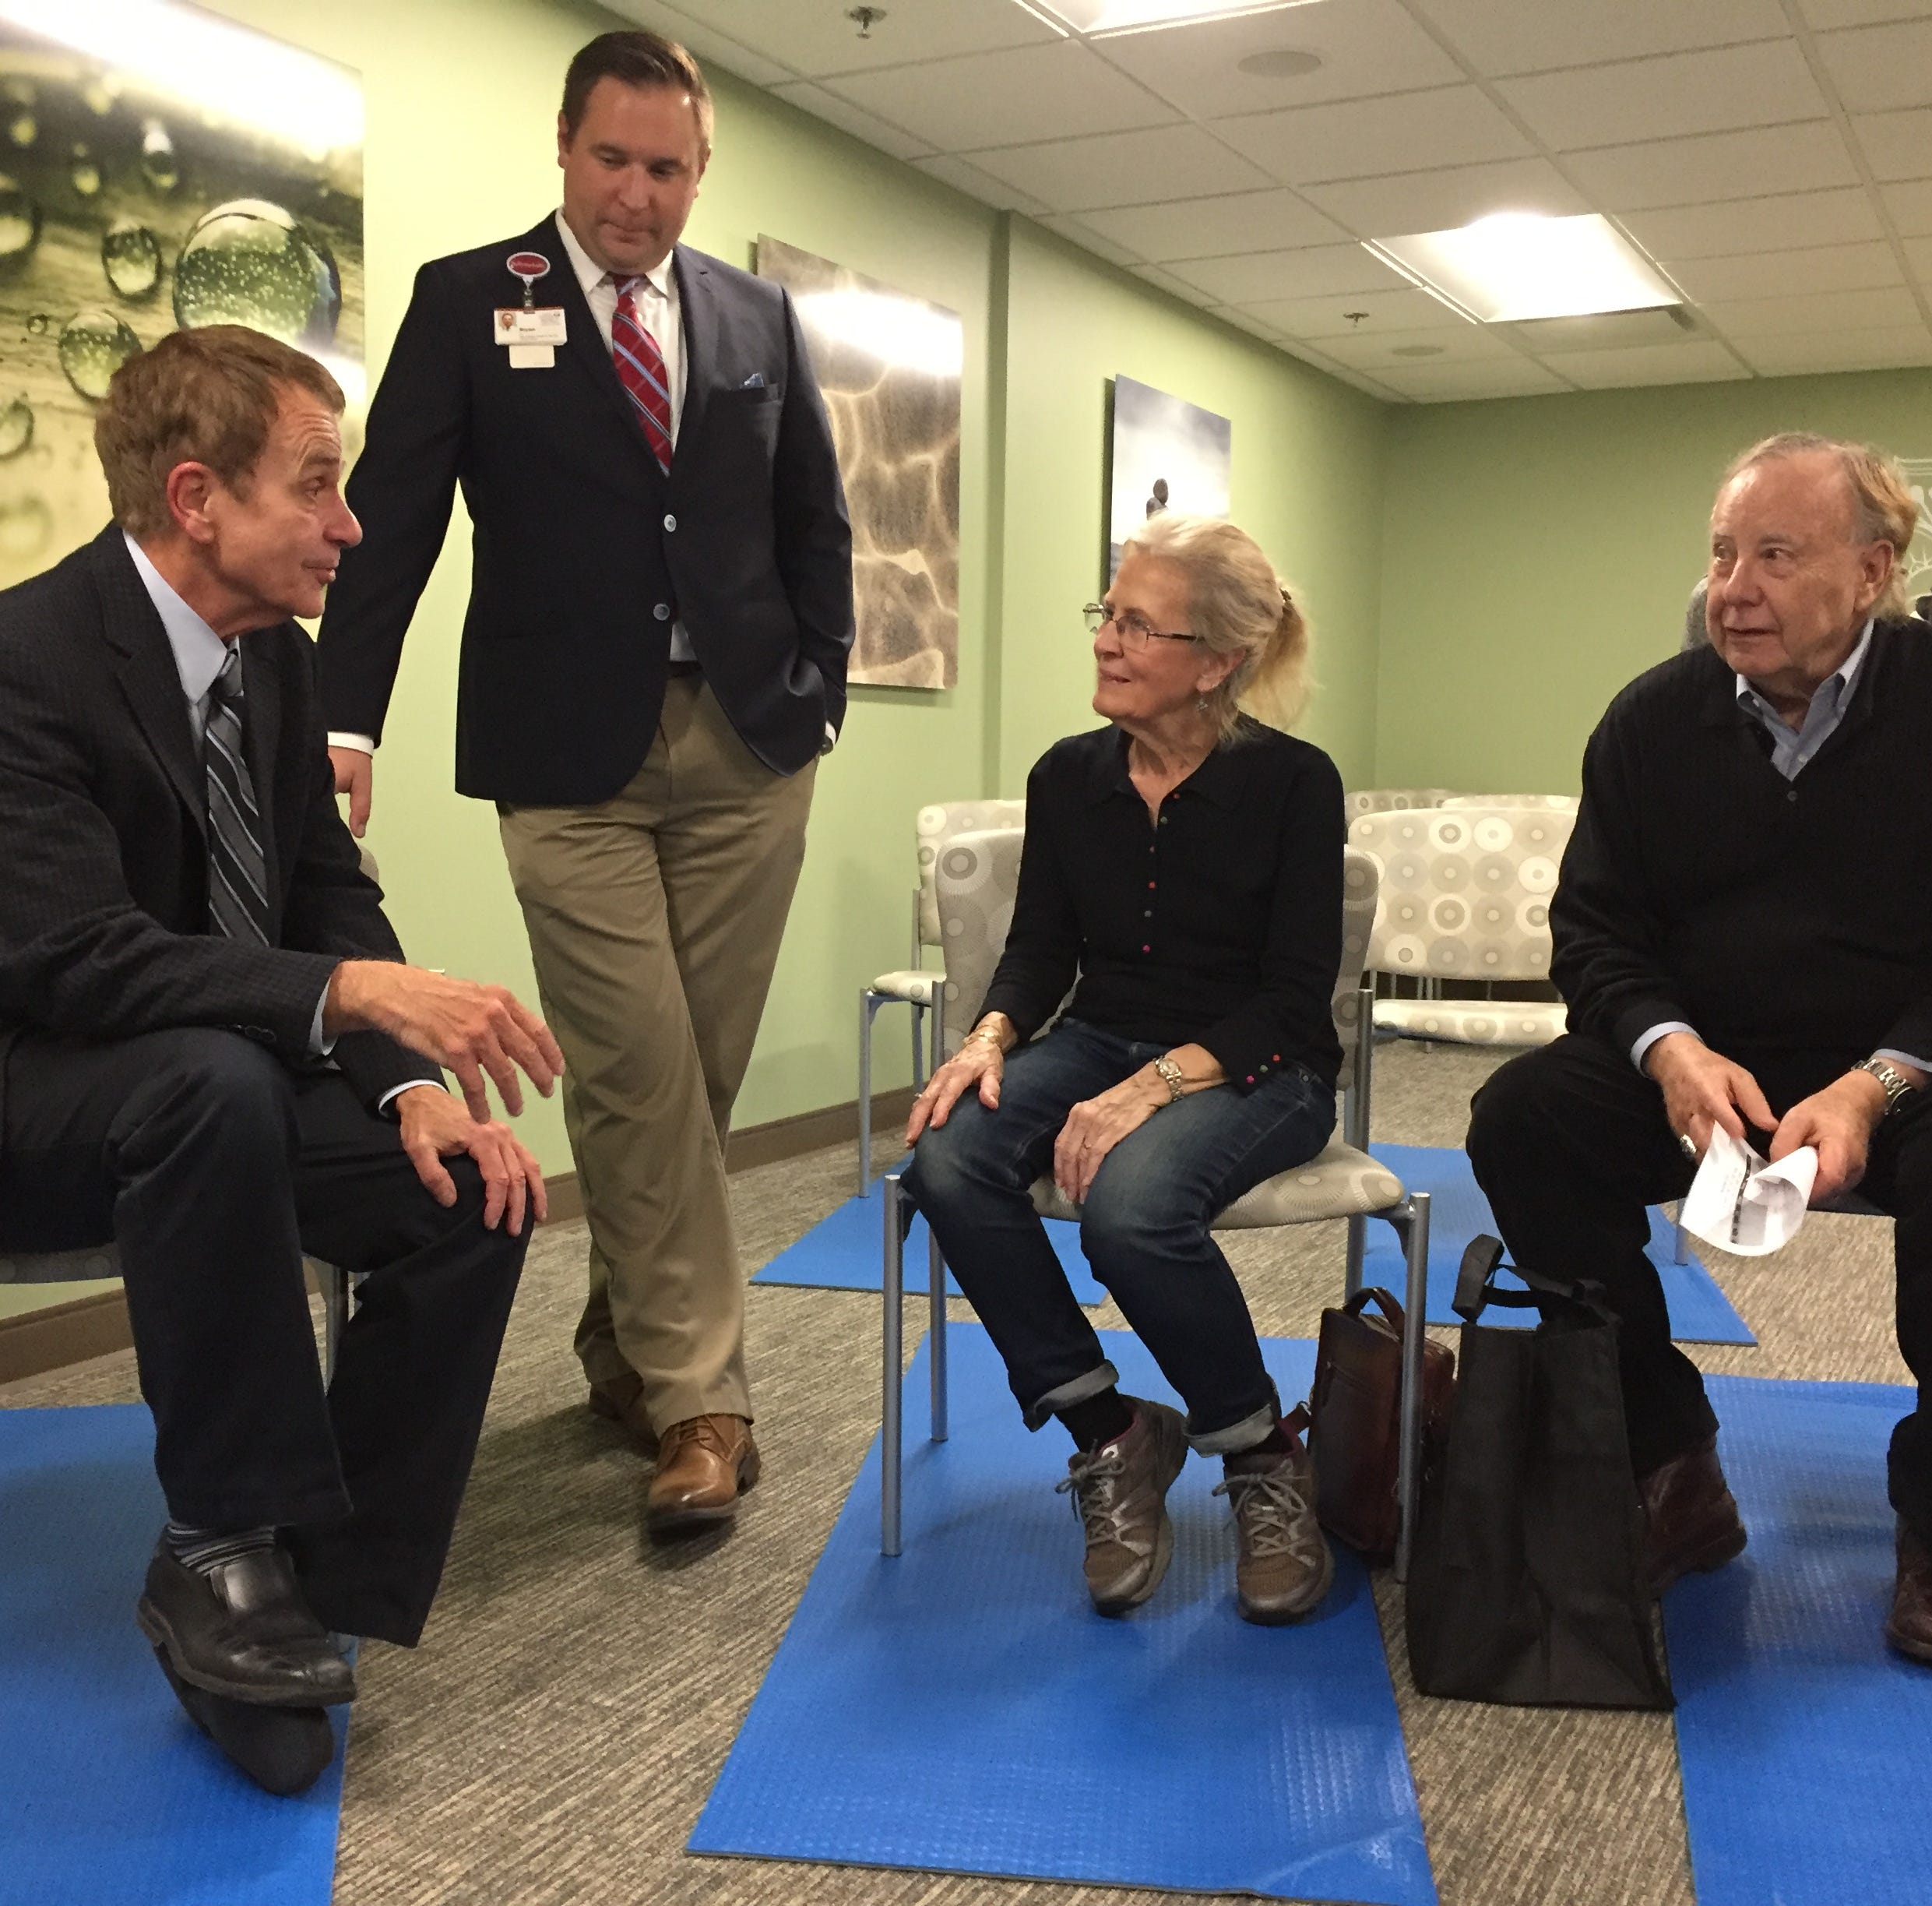 St. Joseph's opens first intensive heart health rehab program in Livingston County